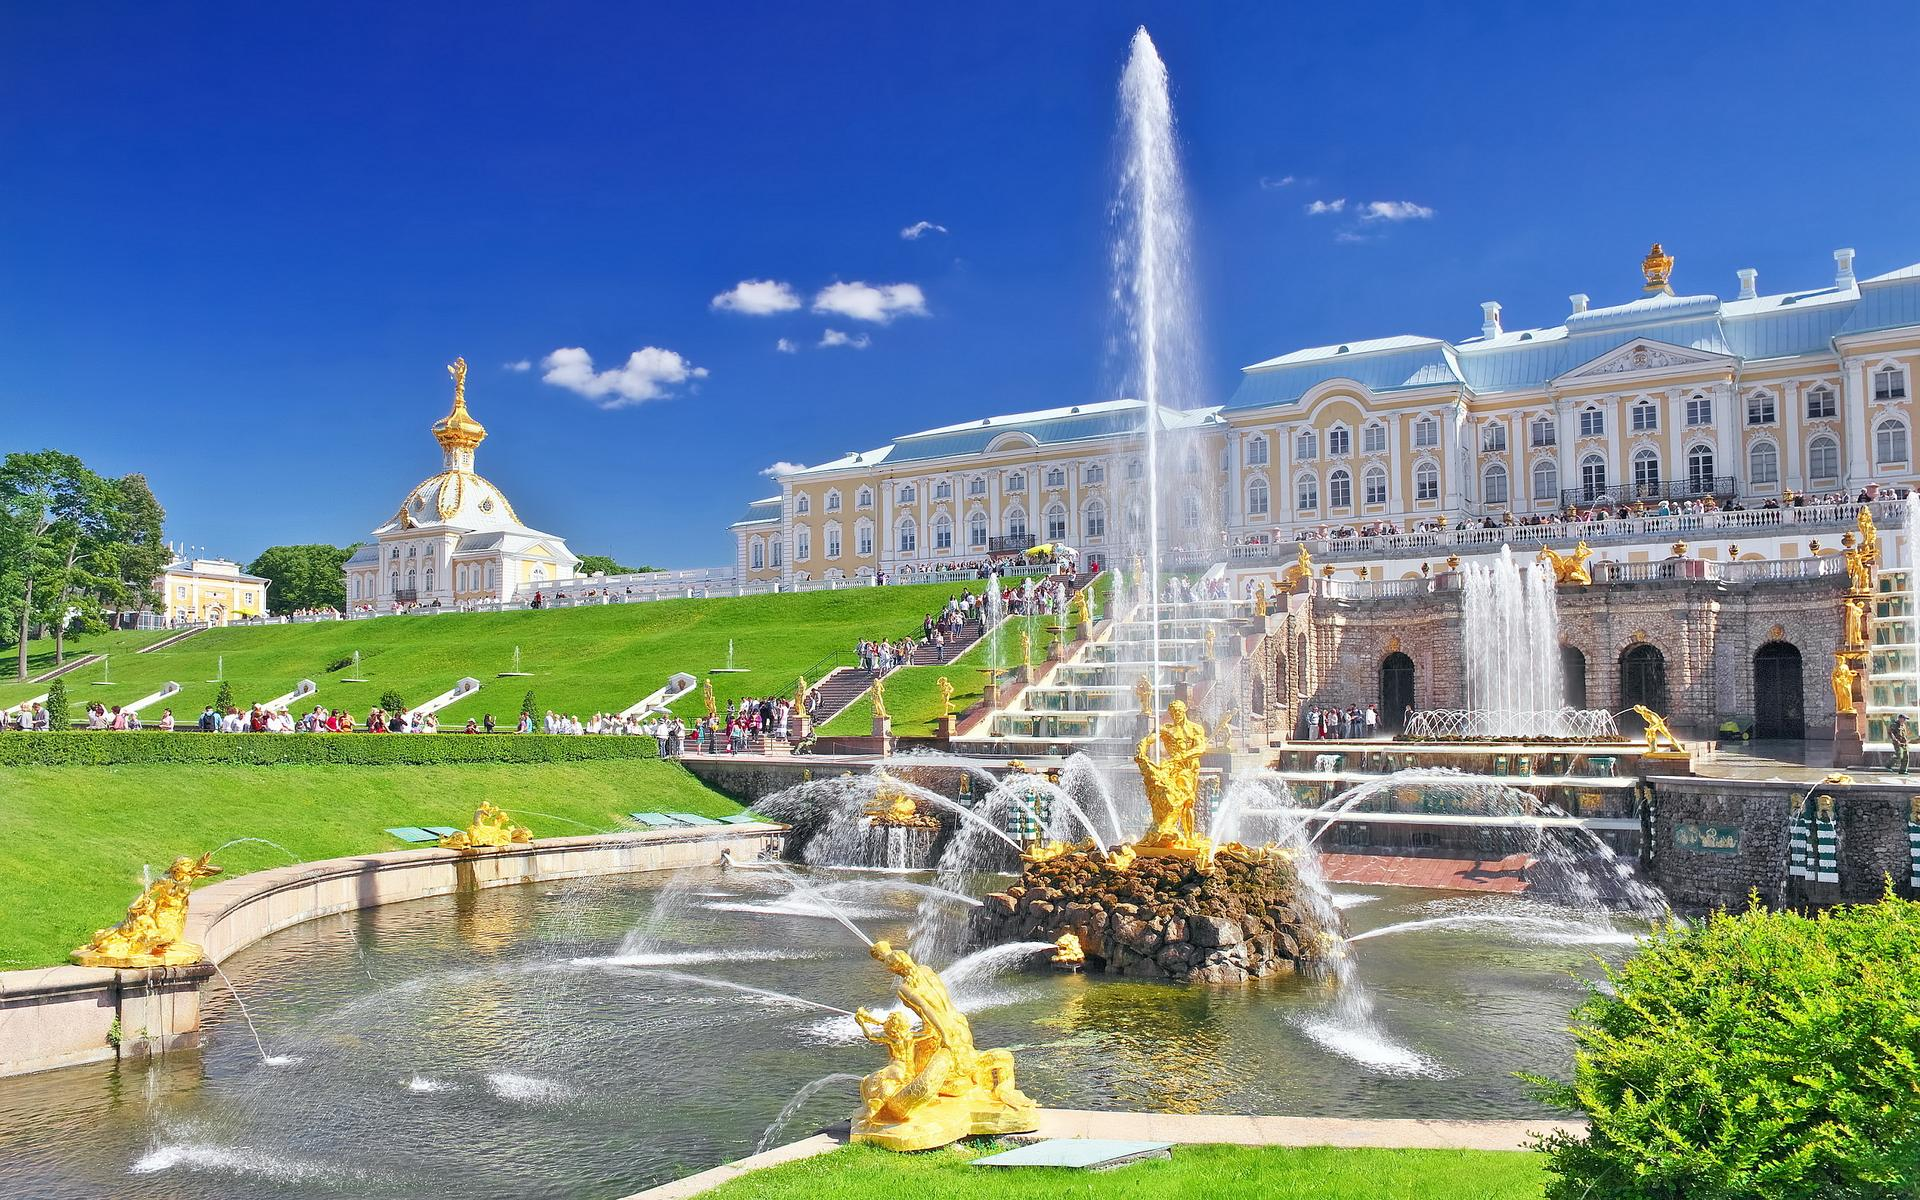 Tour to Peterhof Lower Park and Grand Palace (by car)